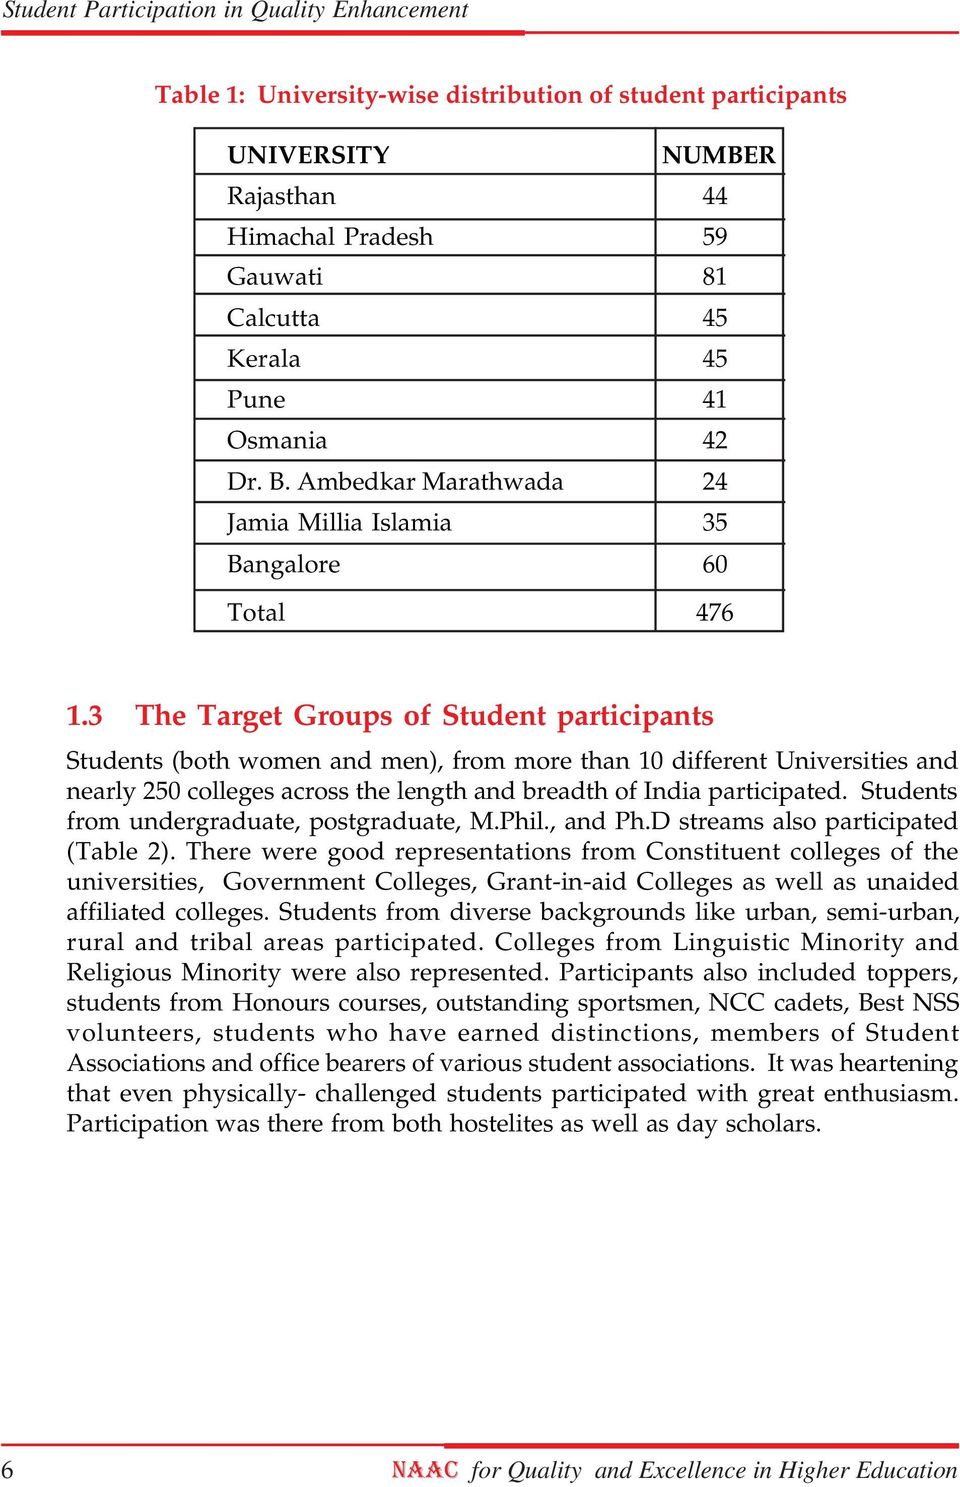 3 The Target Groups of Student participants Students (both women and men), from more than 10 different Universities and nearly 250 colleges across the length and breadth of India participated.